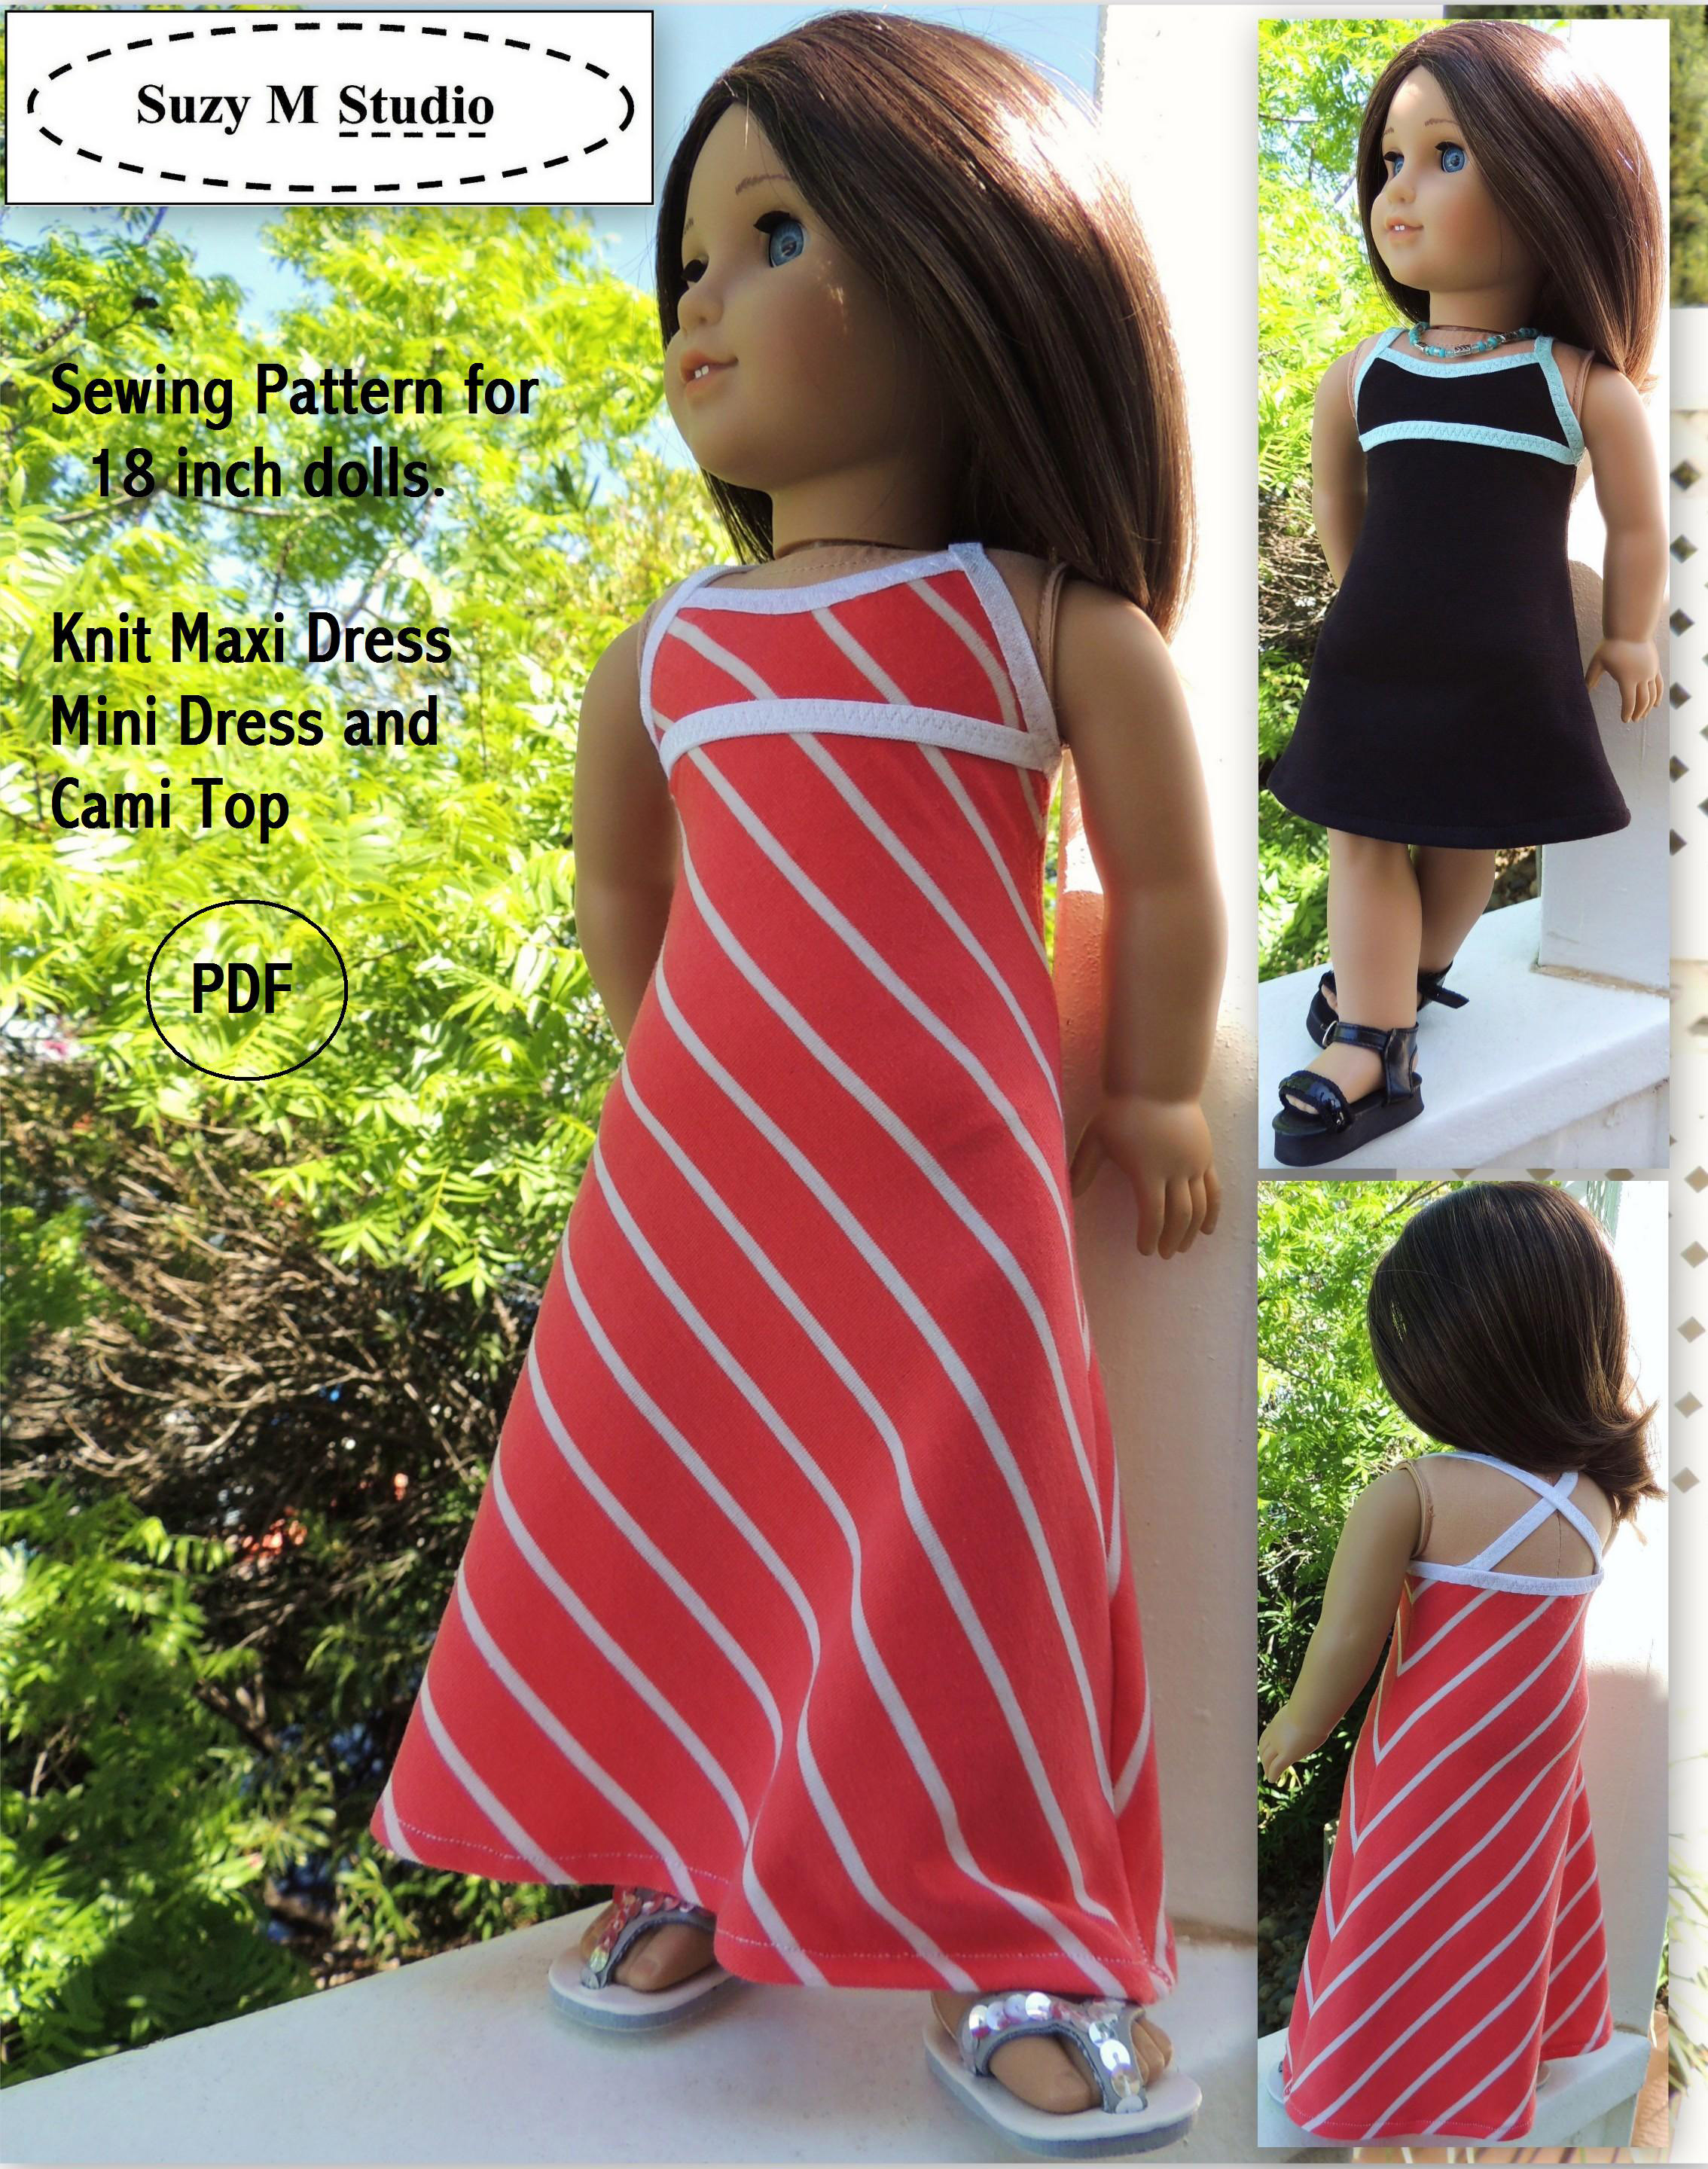 Suzymstudio doll clothes and sewing patterns knit maxi dress pattern jeuxipadfo Images